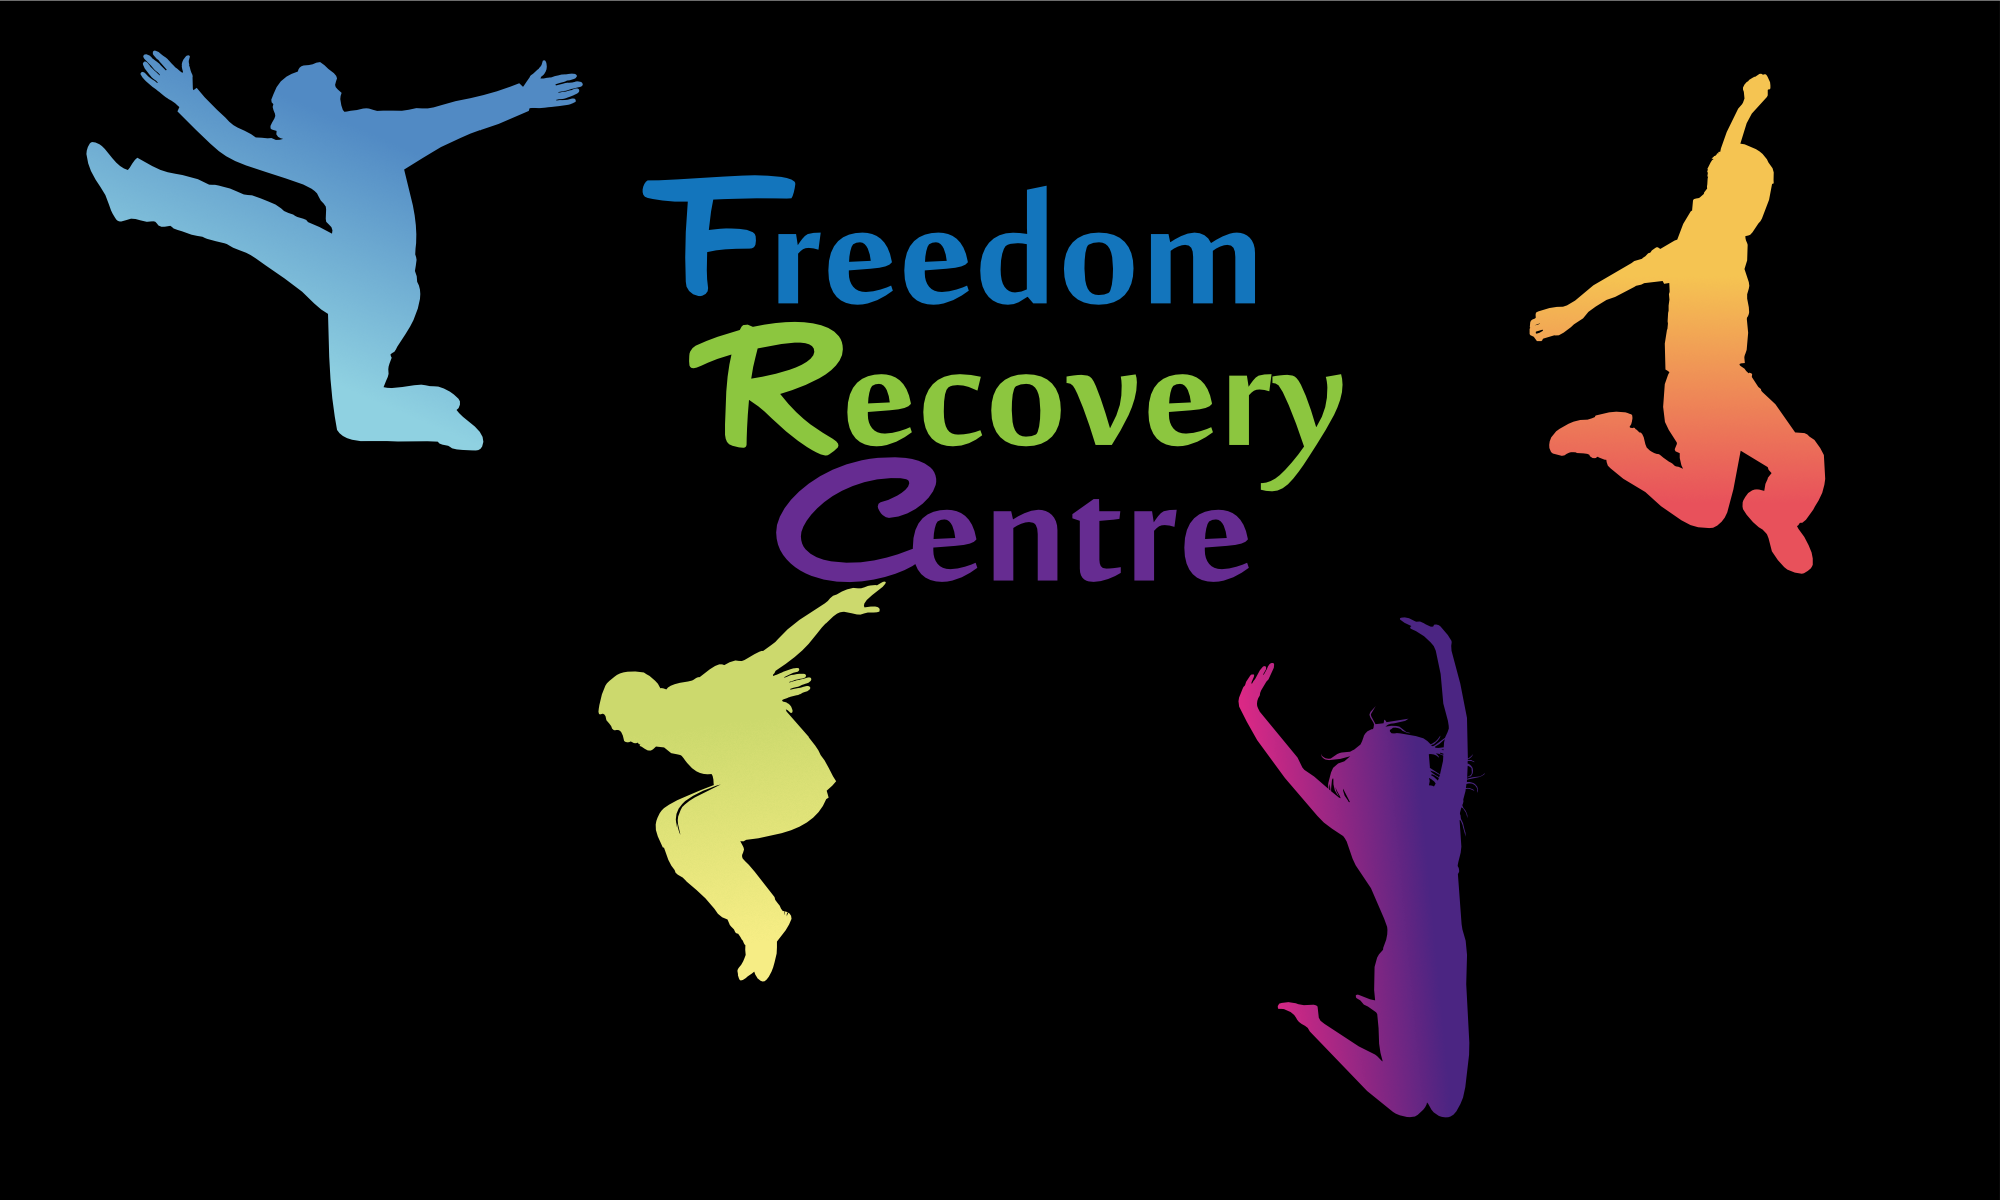 Freedom Recovery Centre